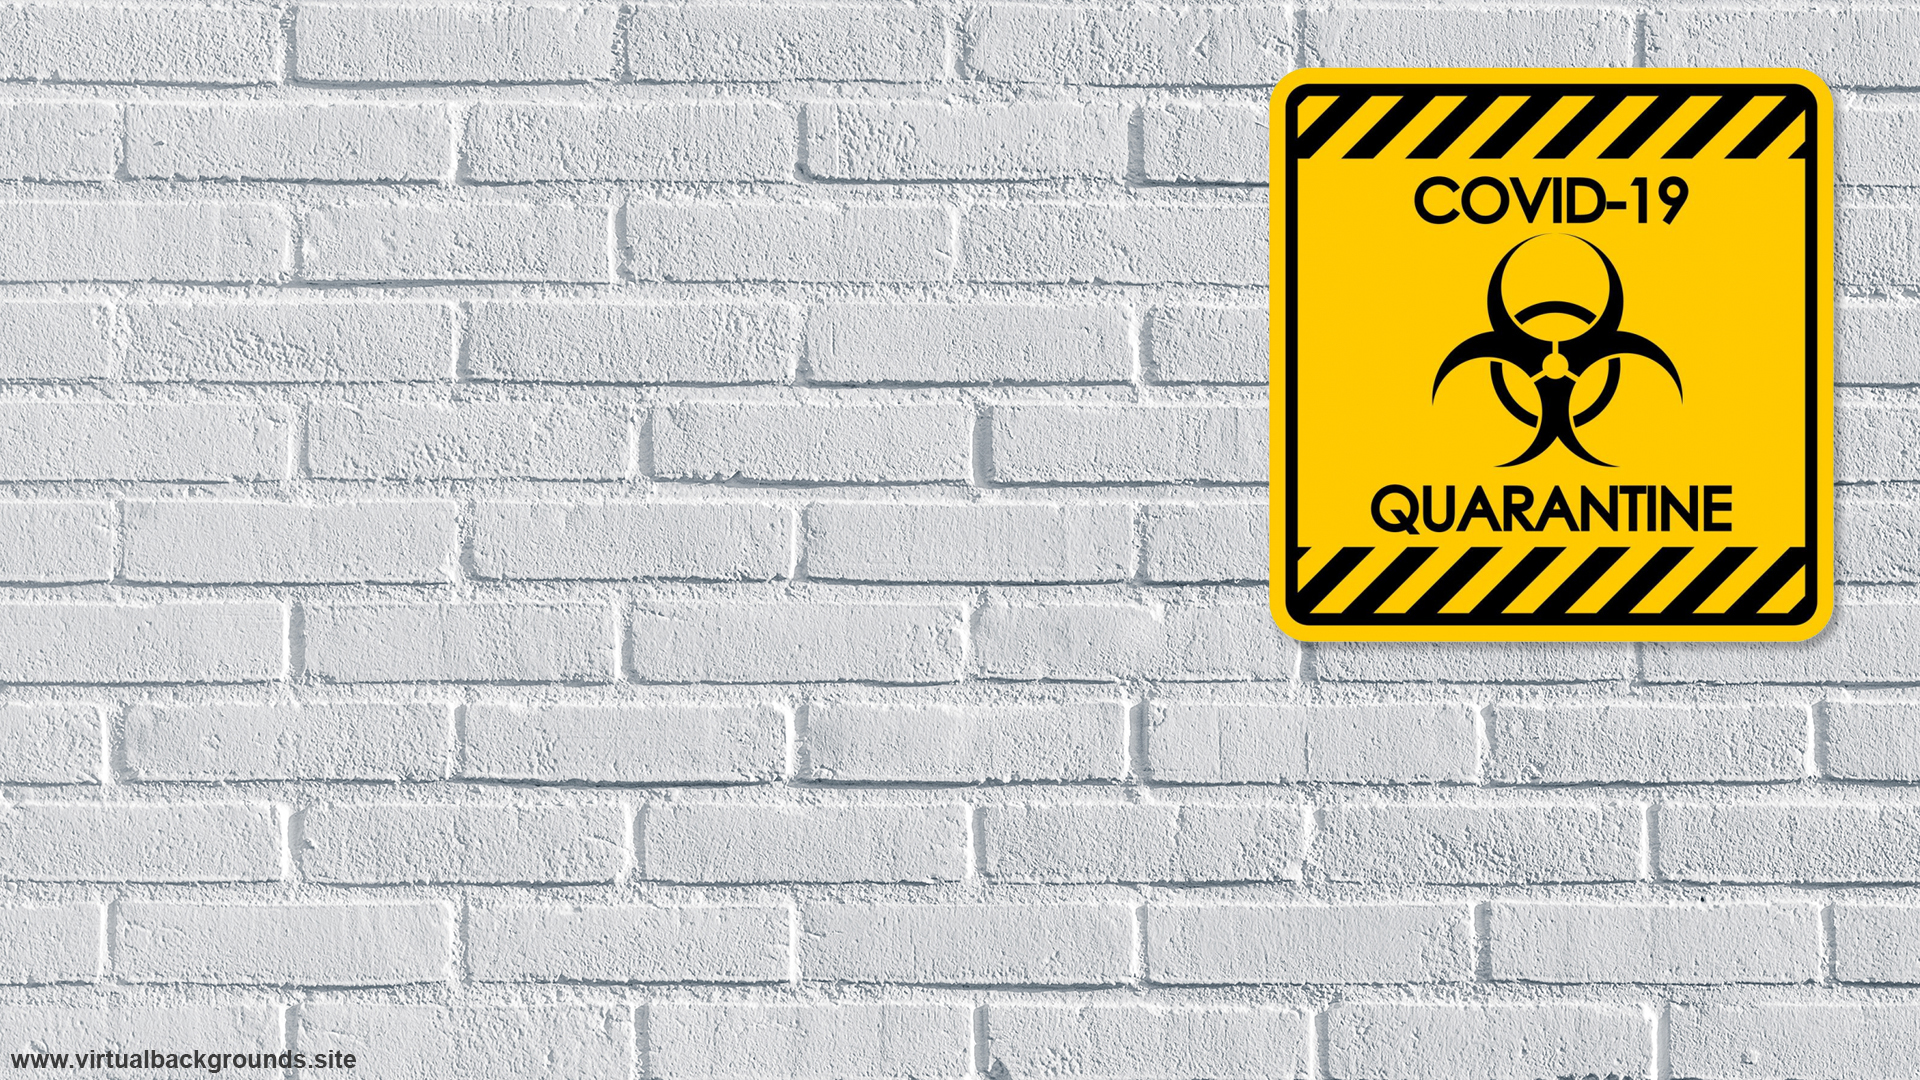 COVID-19 quarantine yellow sign. Virtual background to use on Zoom, Microsoft Teams, Skype, Google Meet, WebEx or any other compatible app.